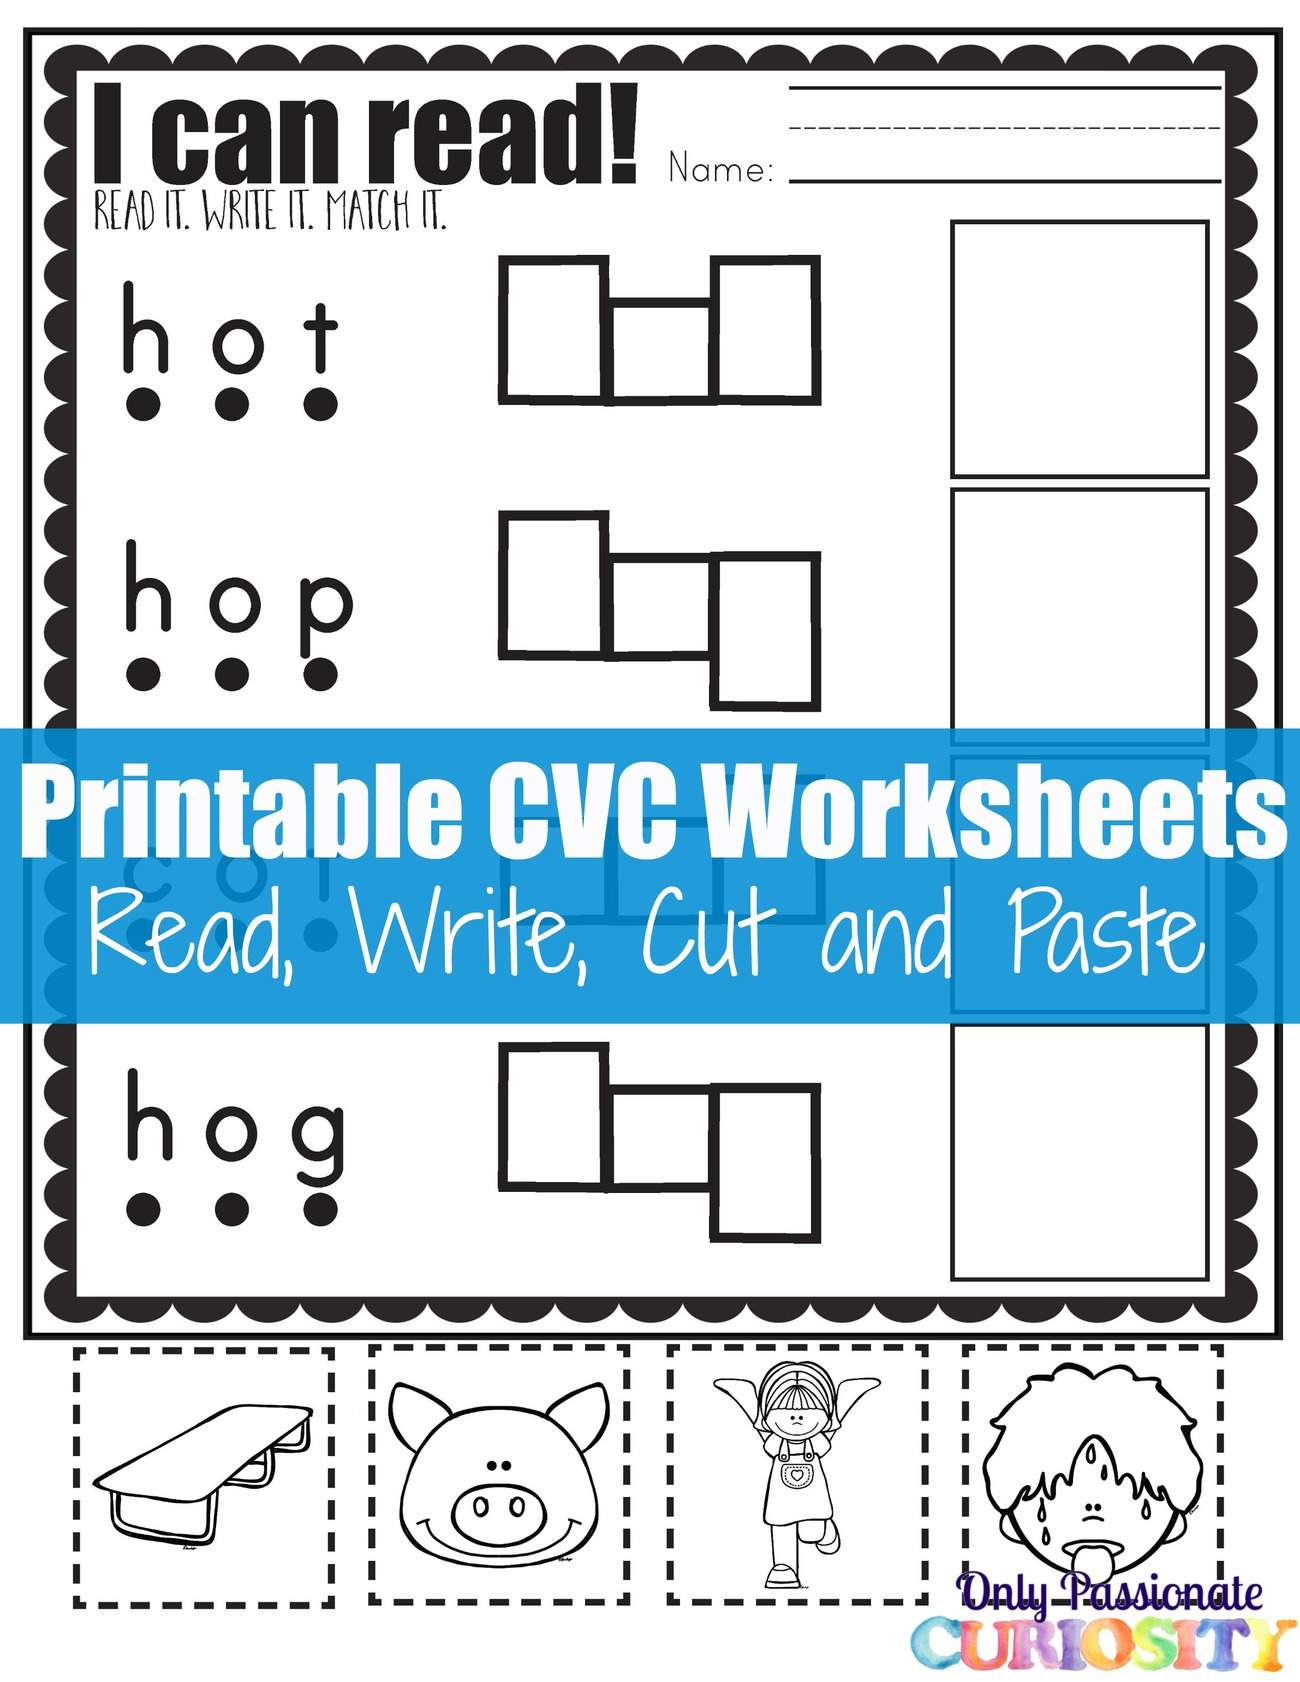 Cvc Worksheets Cut And Paste Letter O Only Passionate Curiosity